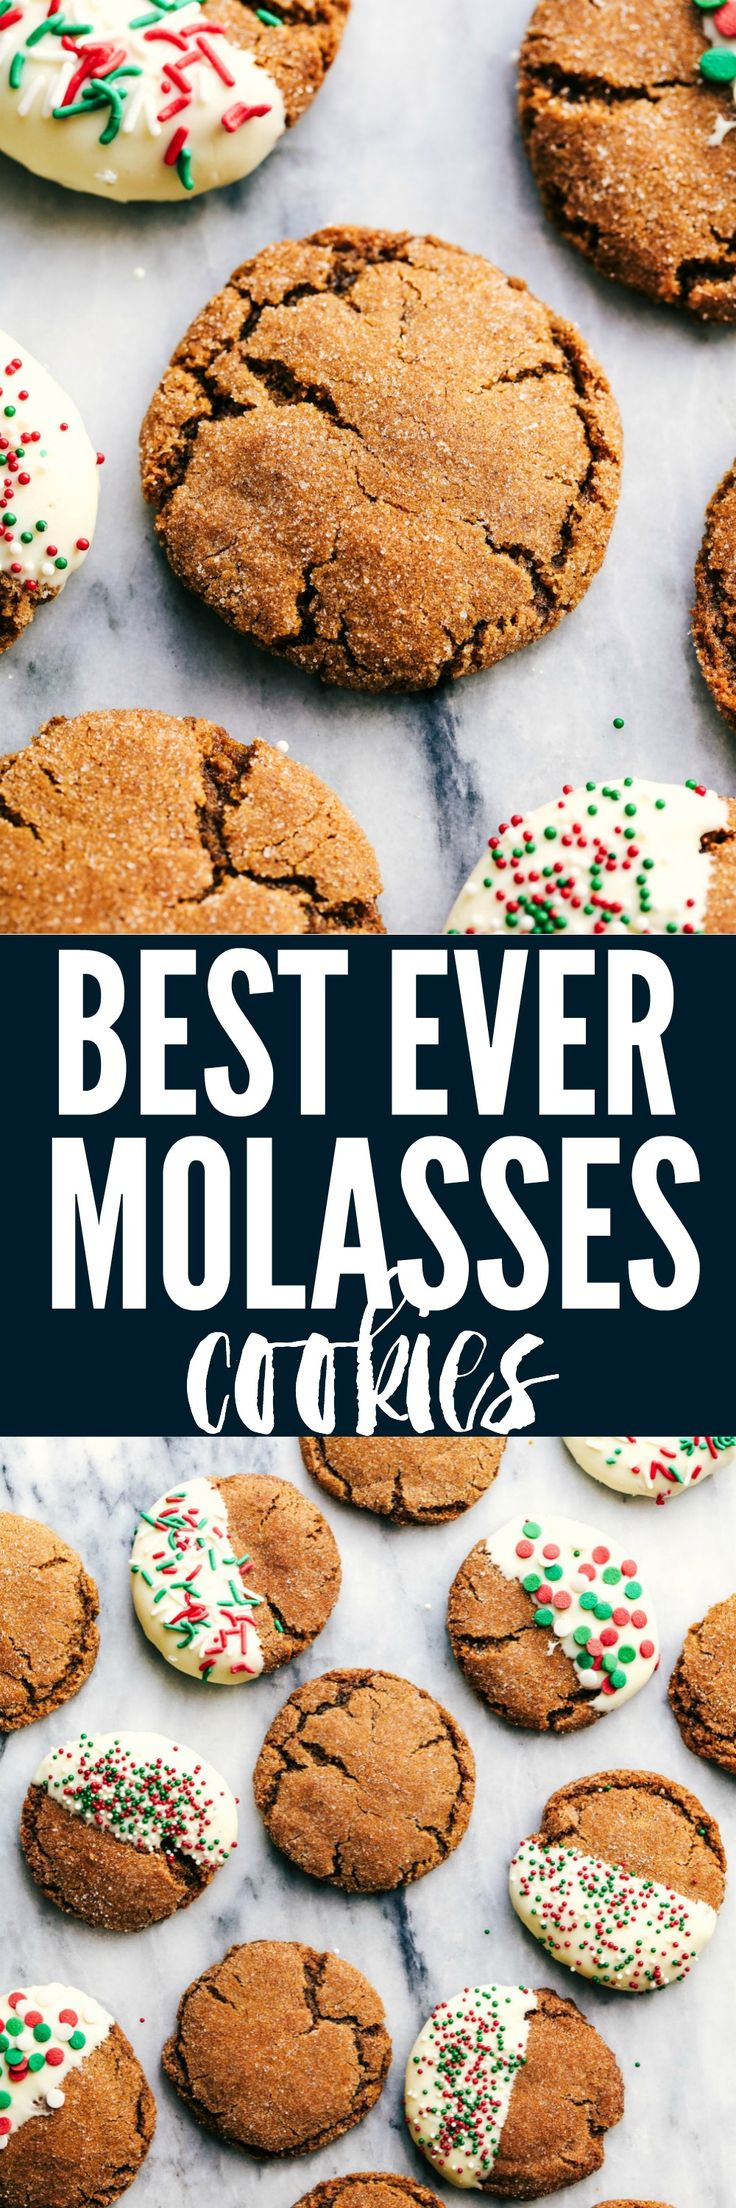 Best Ever Molasses Cookies have a slightly crisp sugar coated edge and a soft and chewy center. These are the perfect holiday cookie!